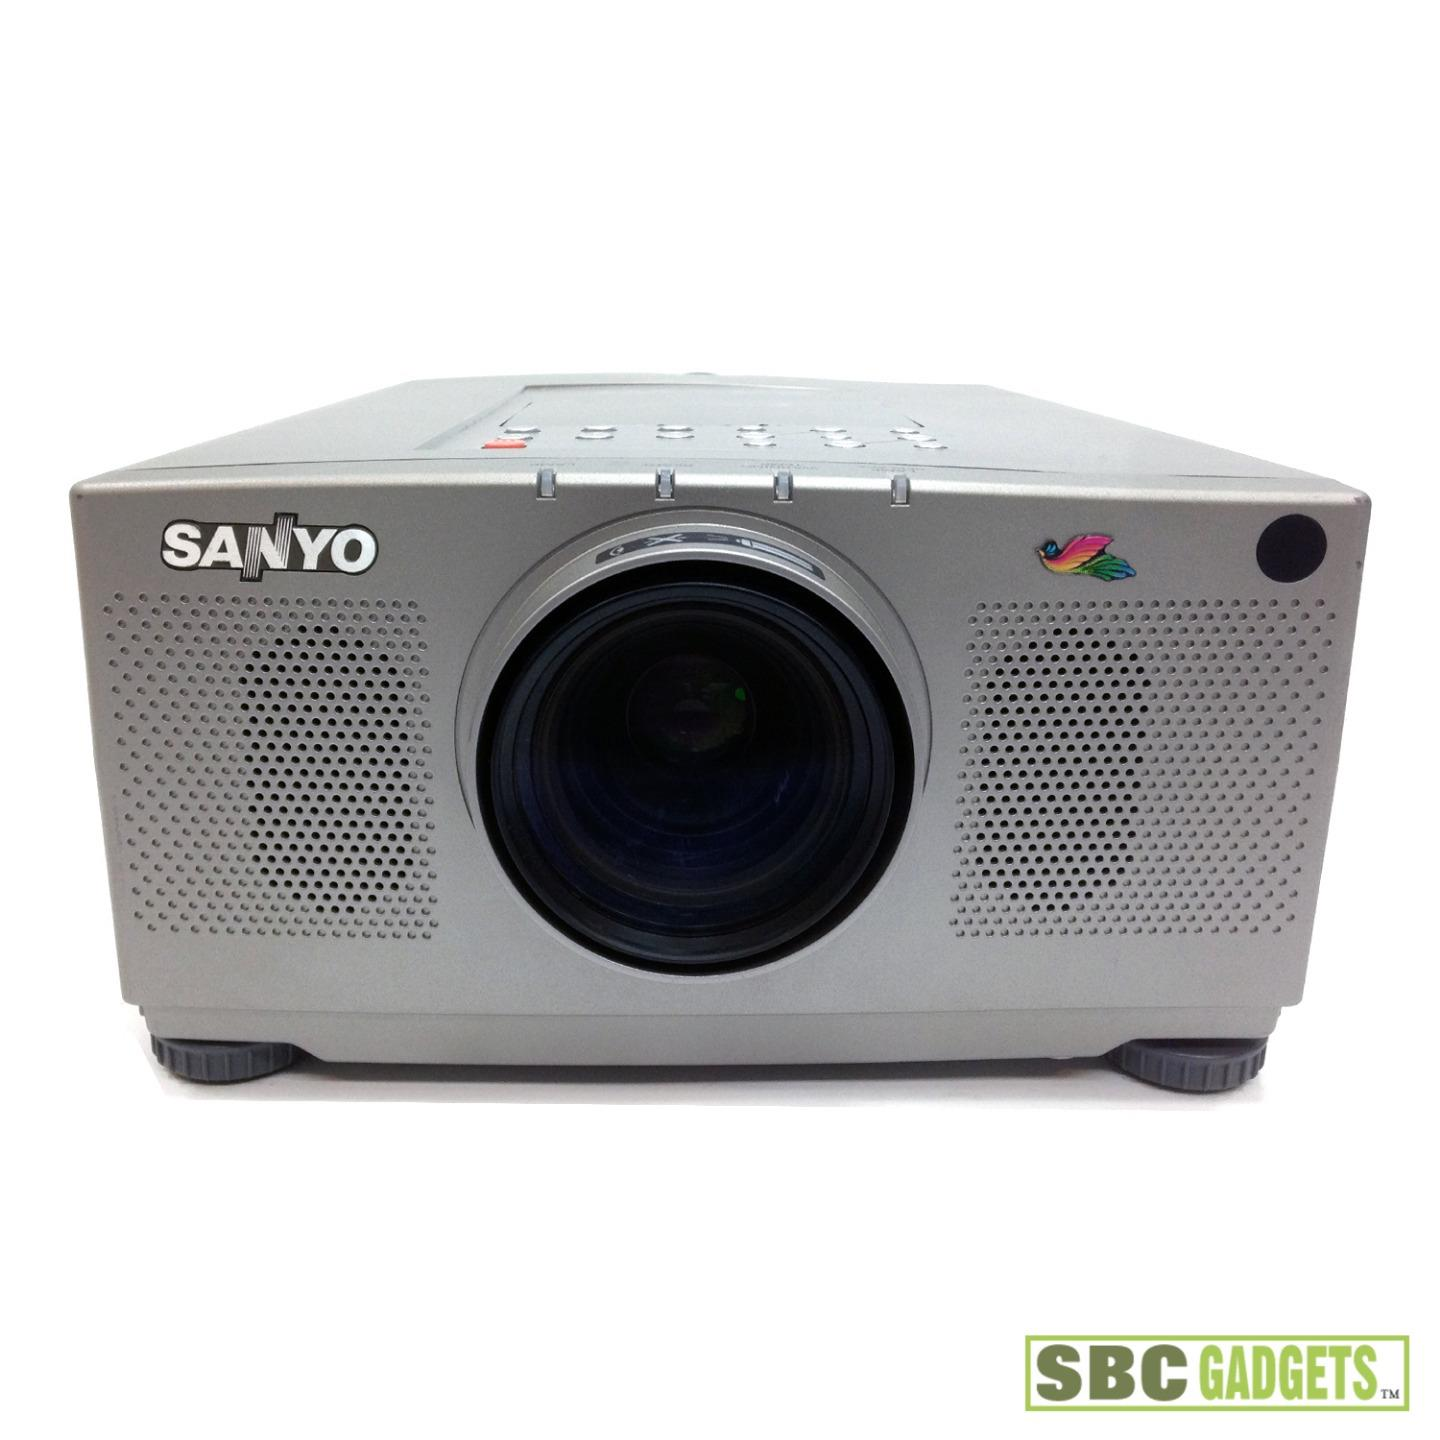 Sanyo Pro Xtrax Multiverse Projector Usb Driver